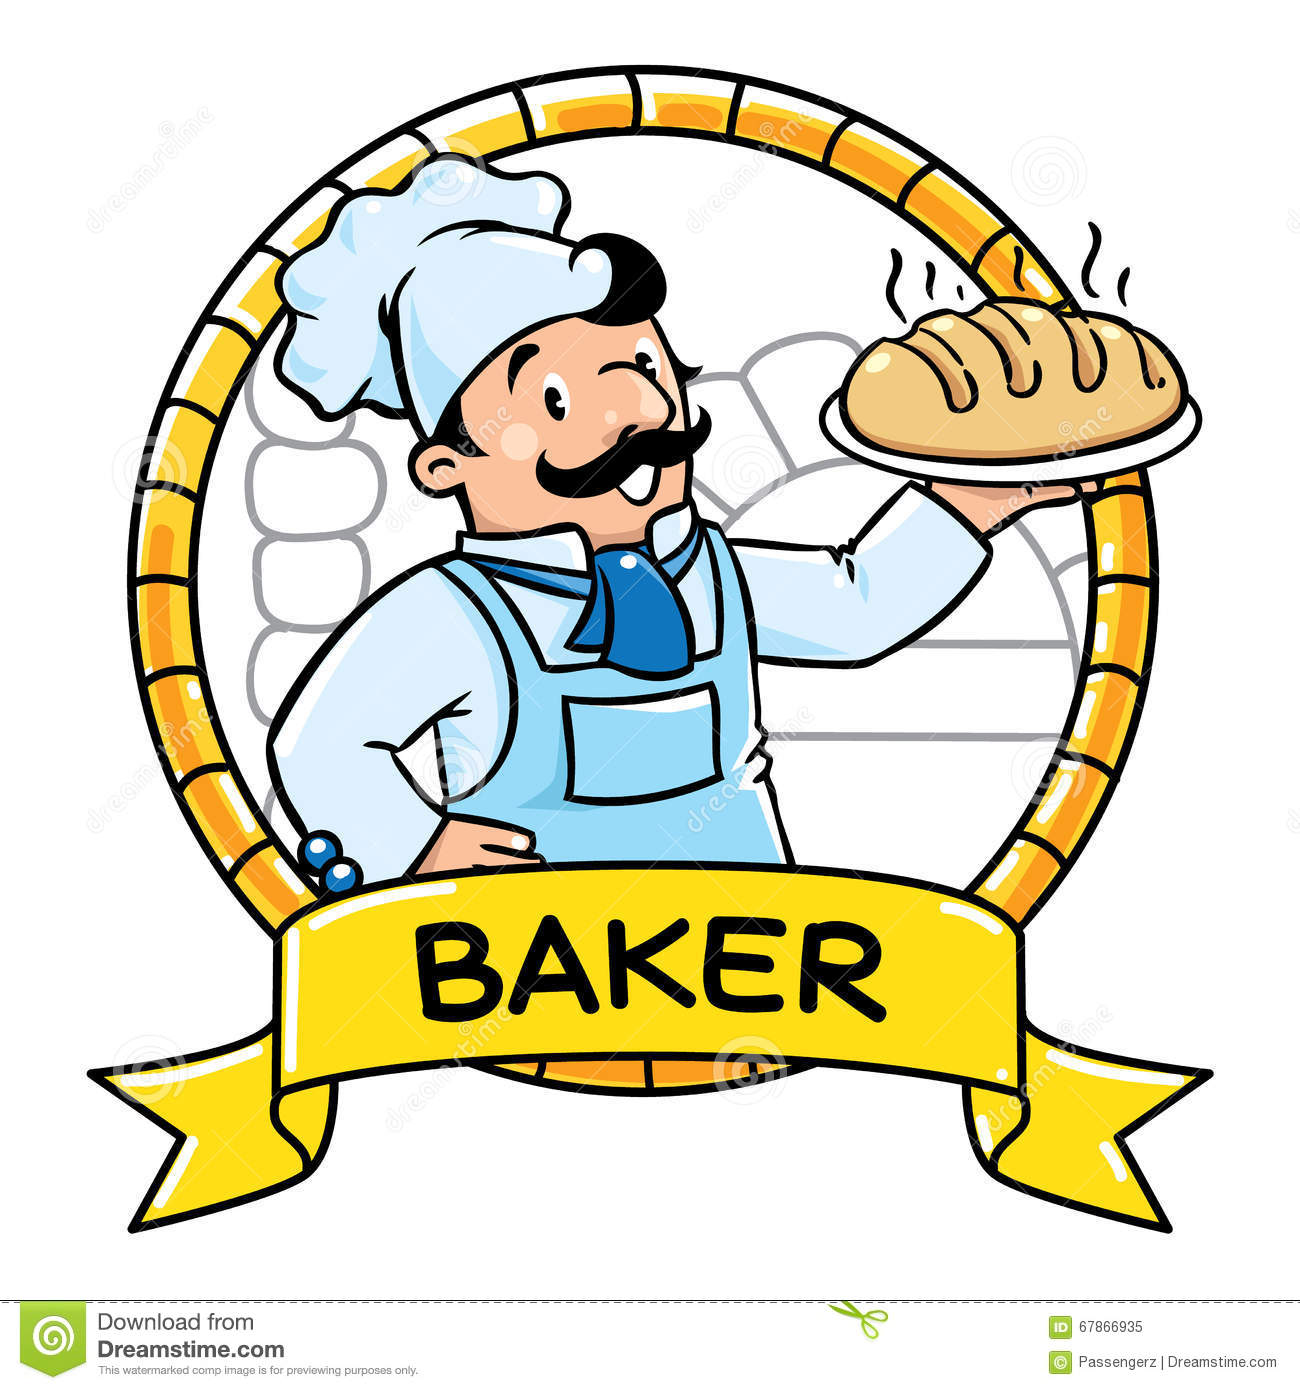 Abc baker clipart jpg stock Funny Cook Or Baker. Emblem. Profession ABC Series Stock Vector ... jpg stock